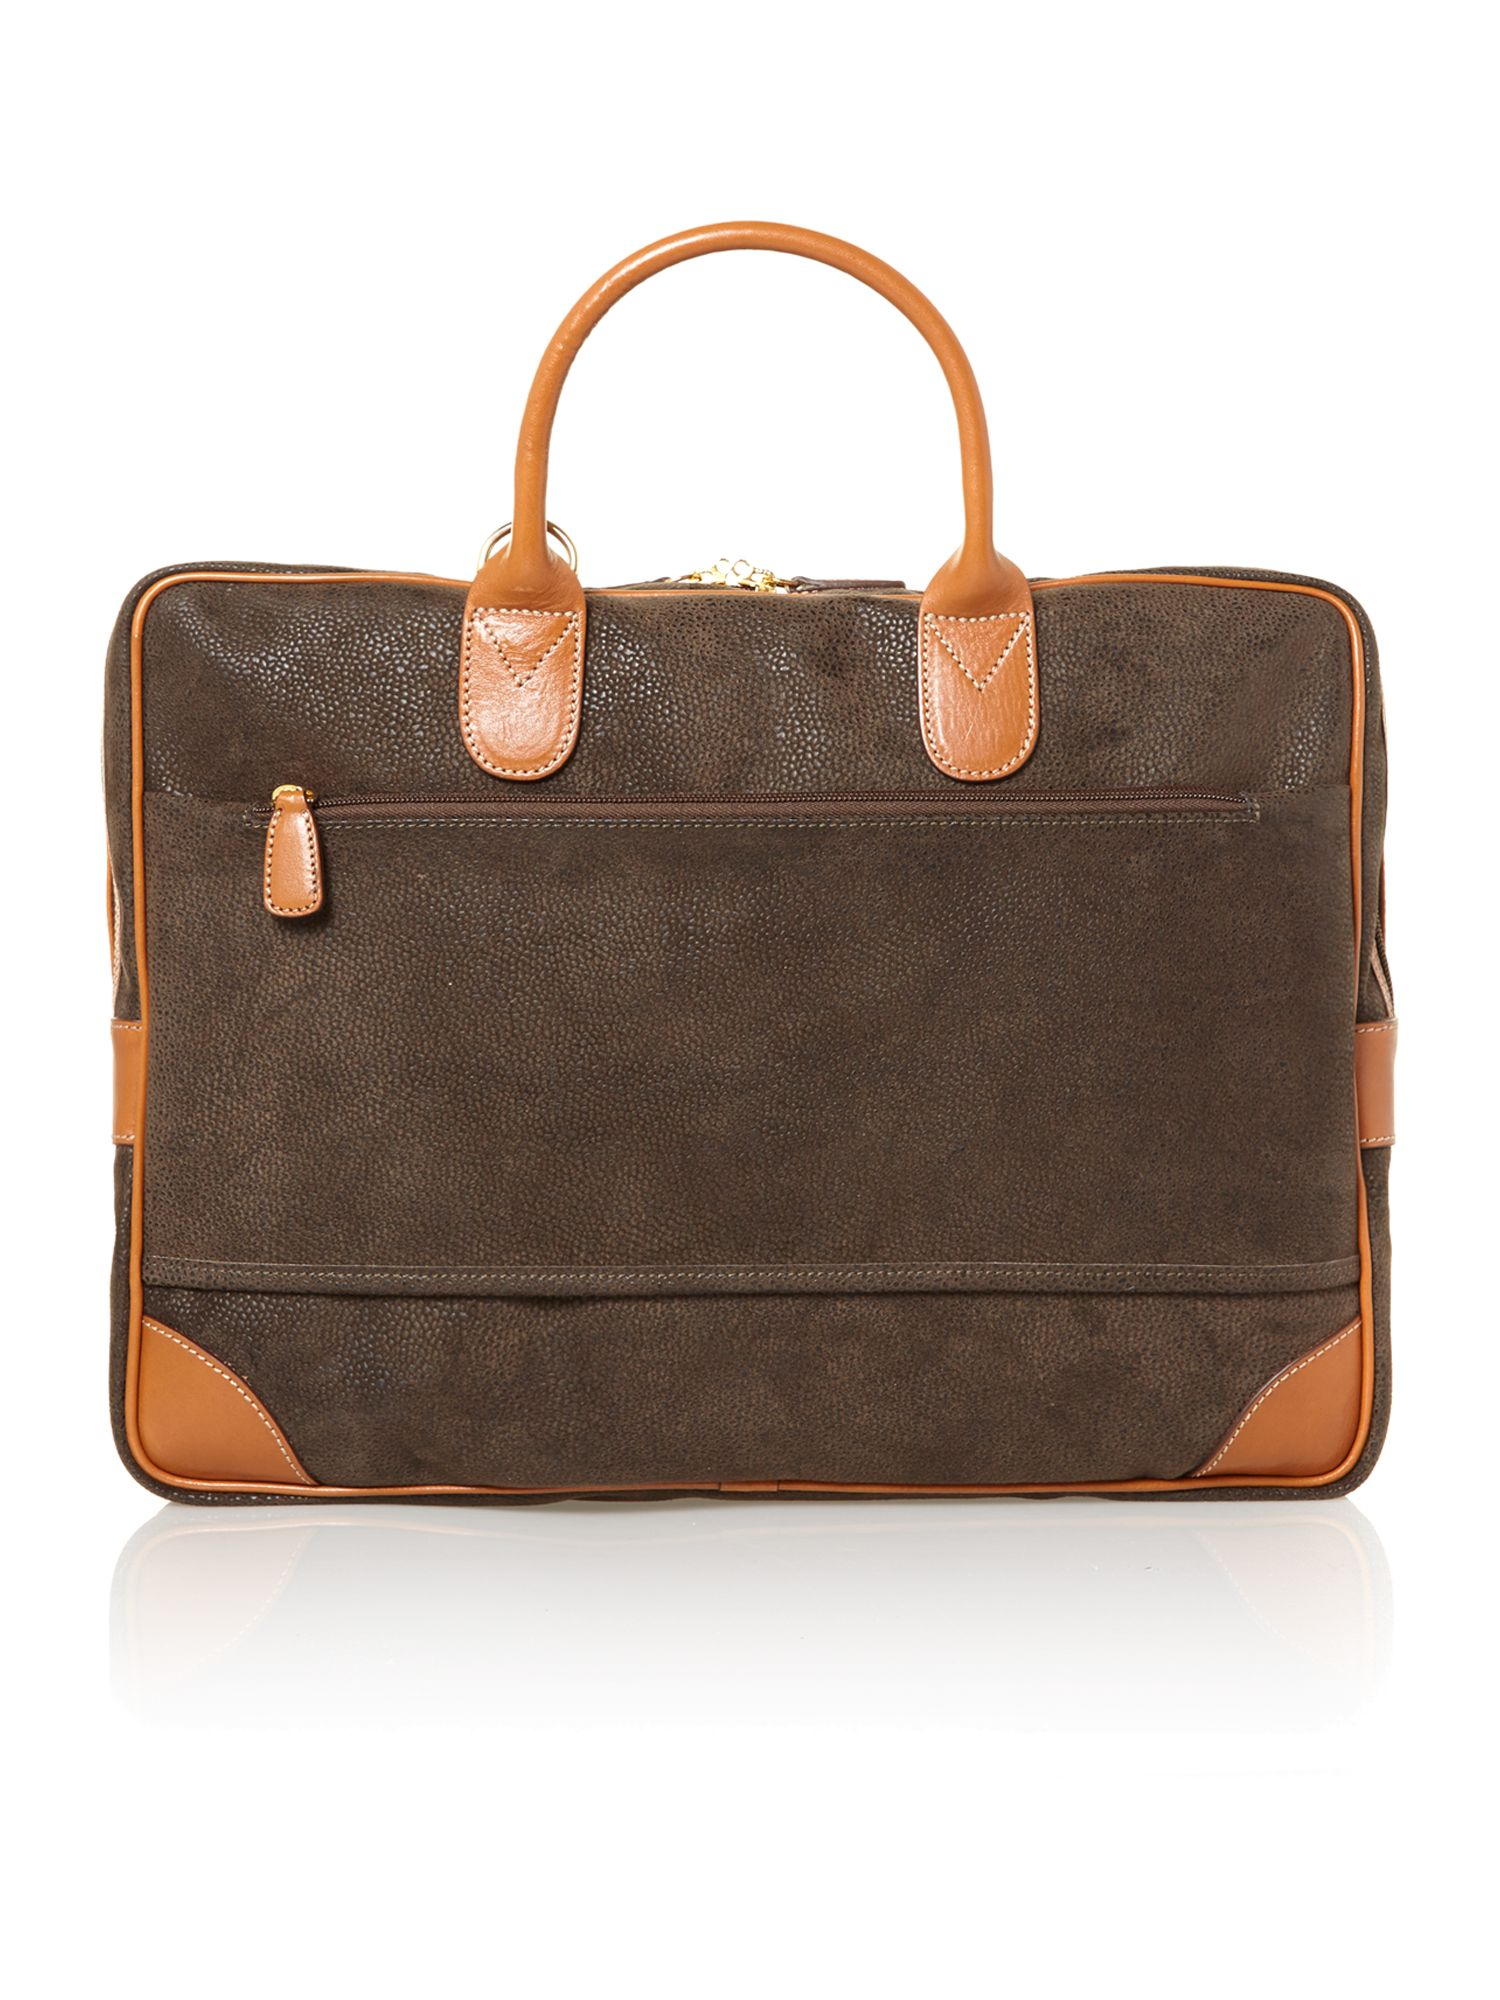 Life olive briefcase 2 handle large gusset